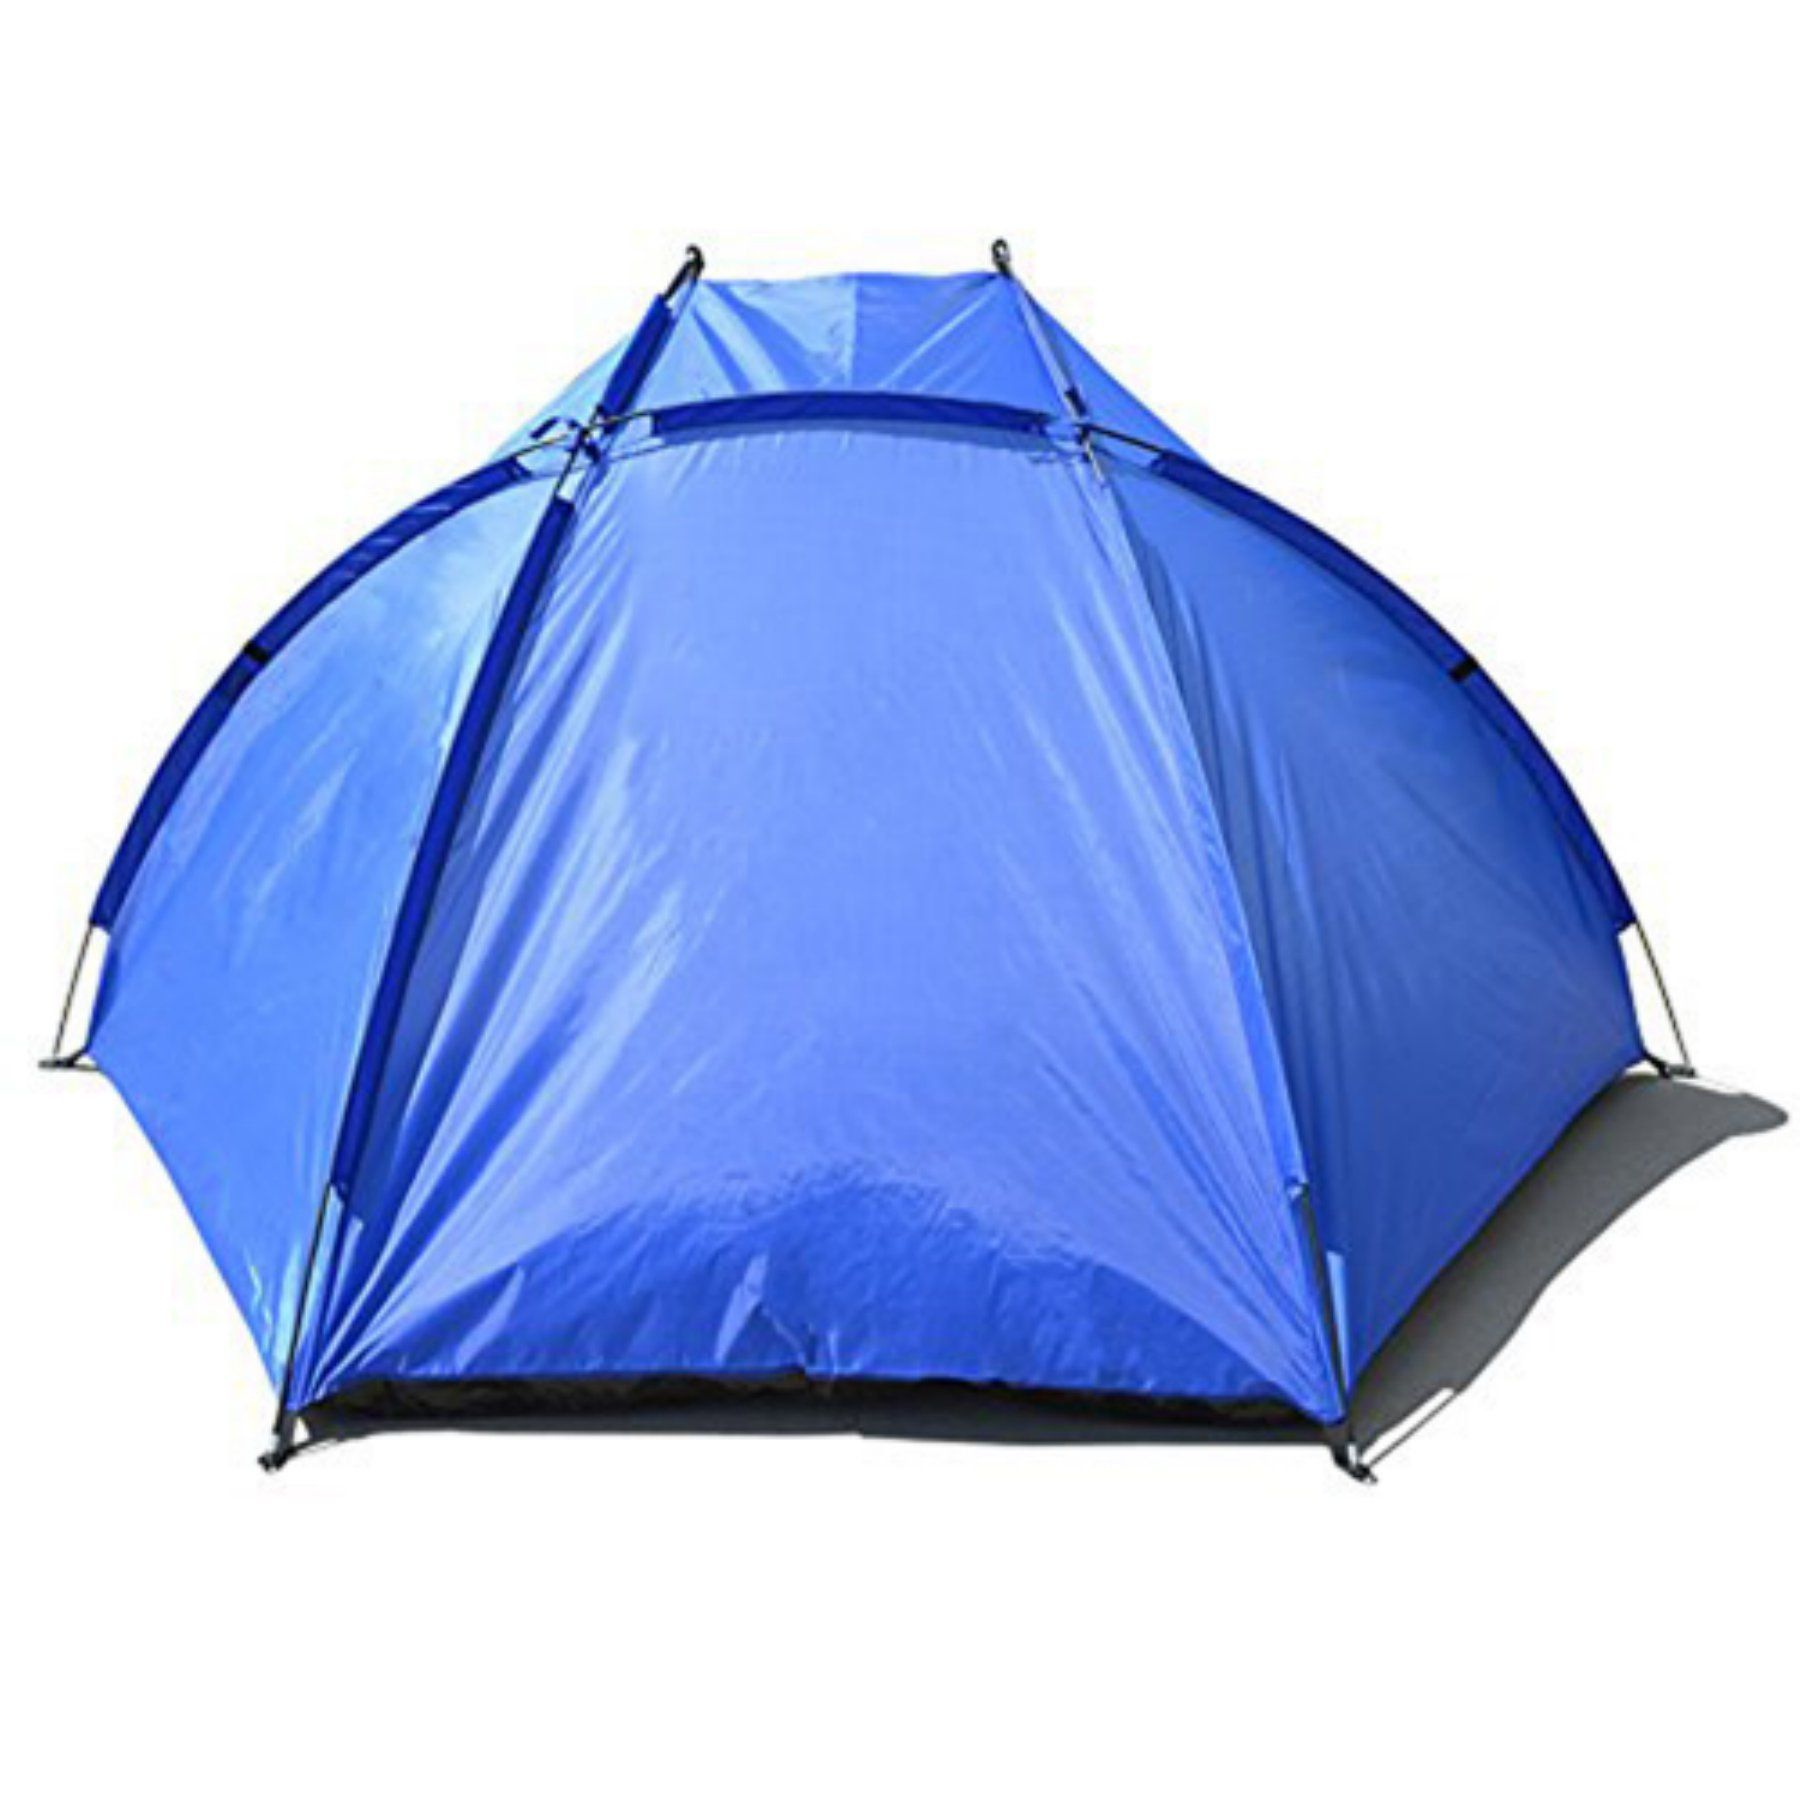 Sunrise Portable Canopy Tent Sun Shelter - ZH-0047  sc 1 st  Pinterest & Sunrise Portable Canopy Tent Sun Shelter - ZH-0047 | Portable ...